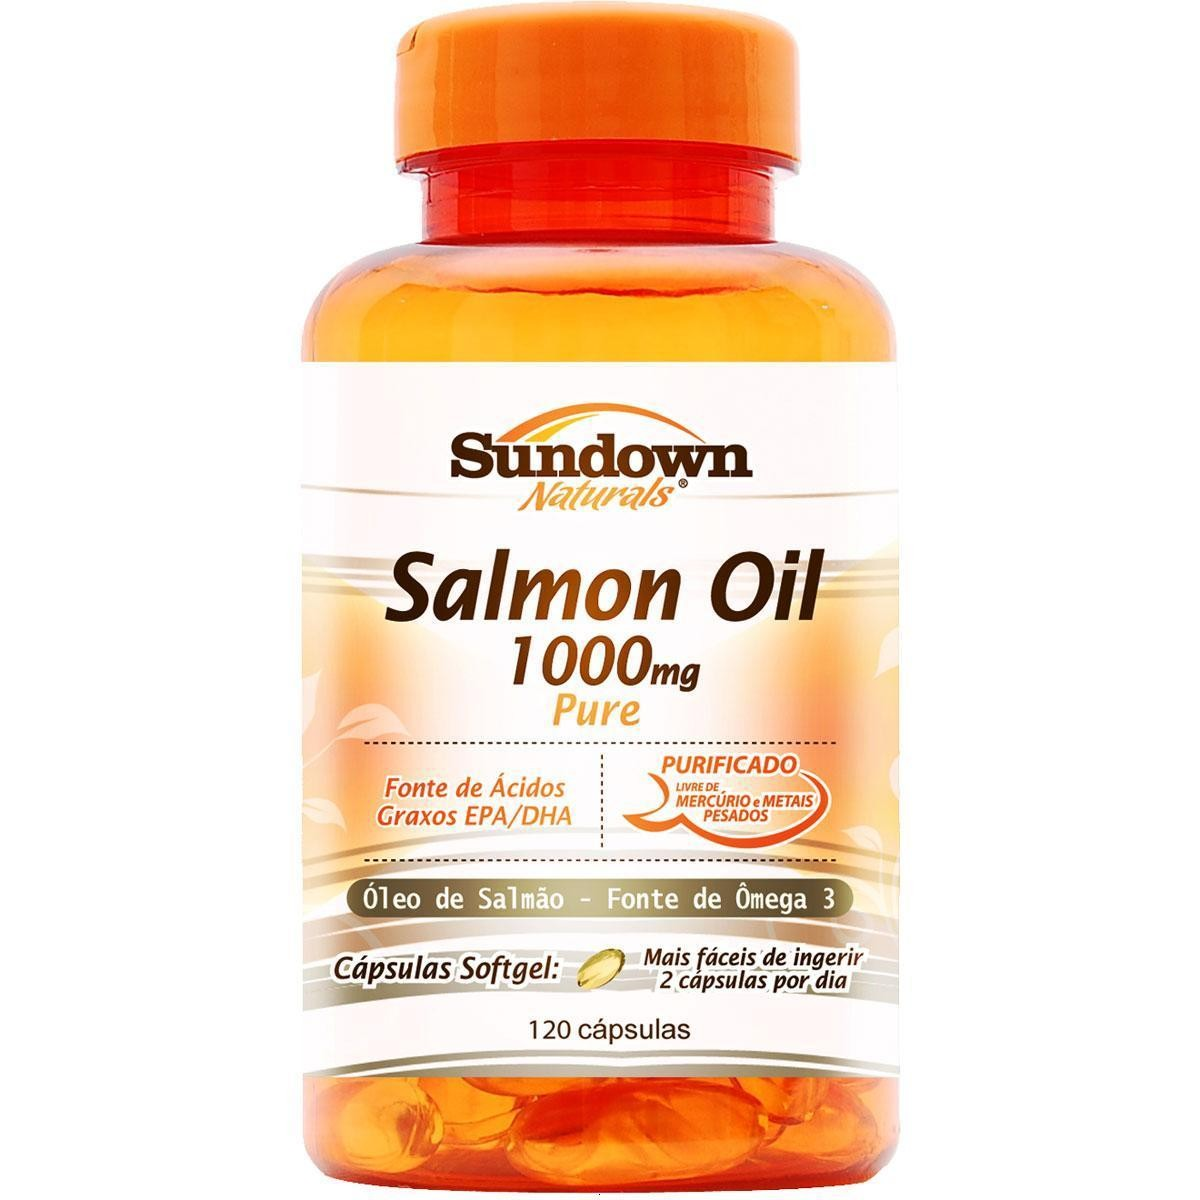 Salmon Oil 1000mg (120 Cápsulas) - Sundown